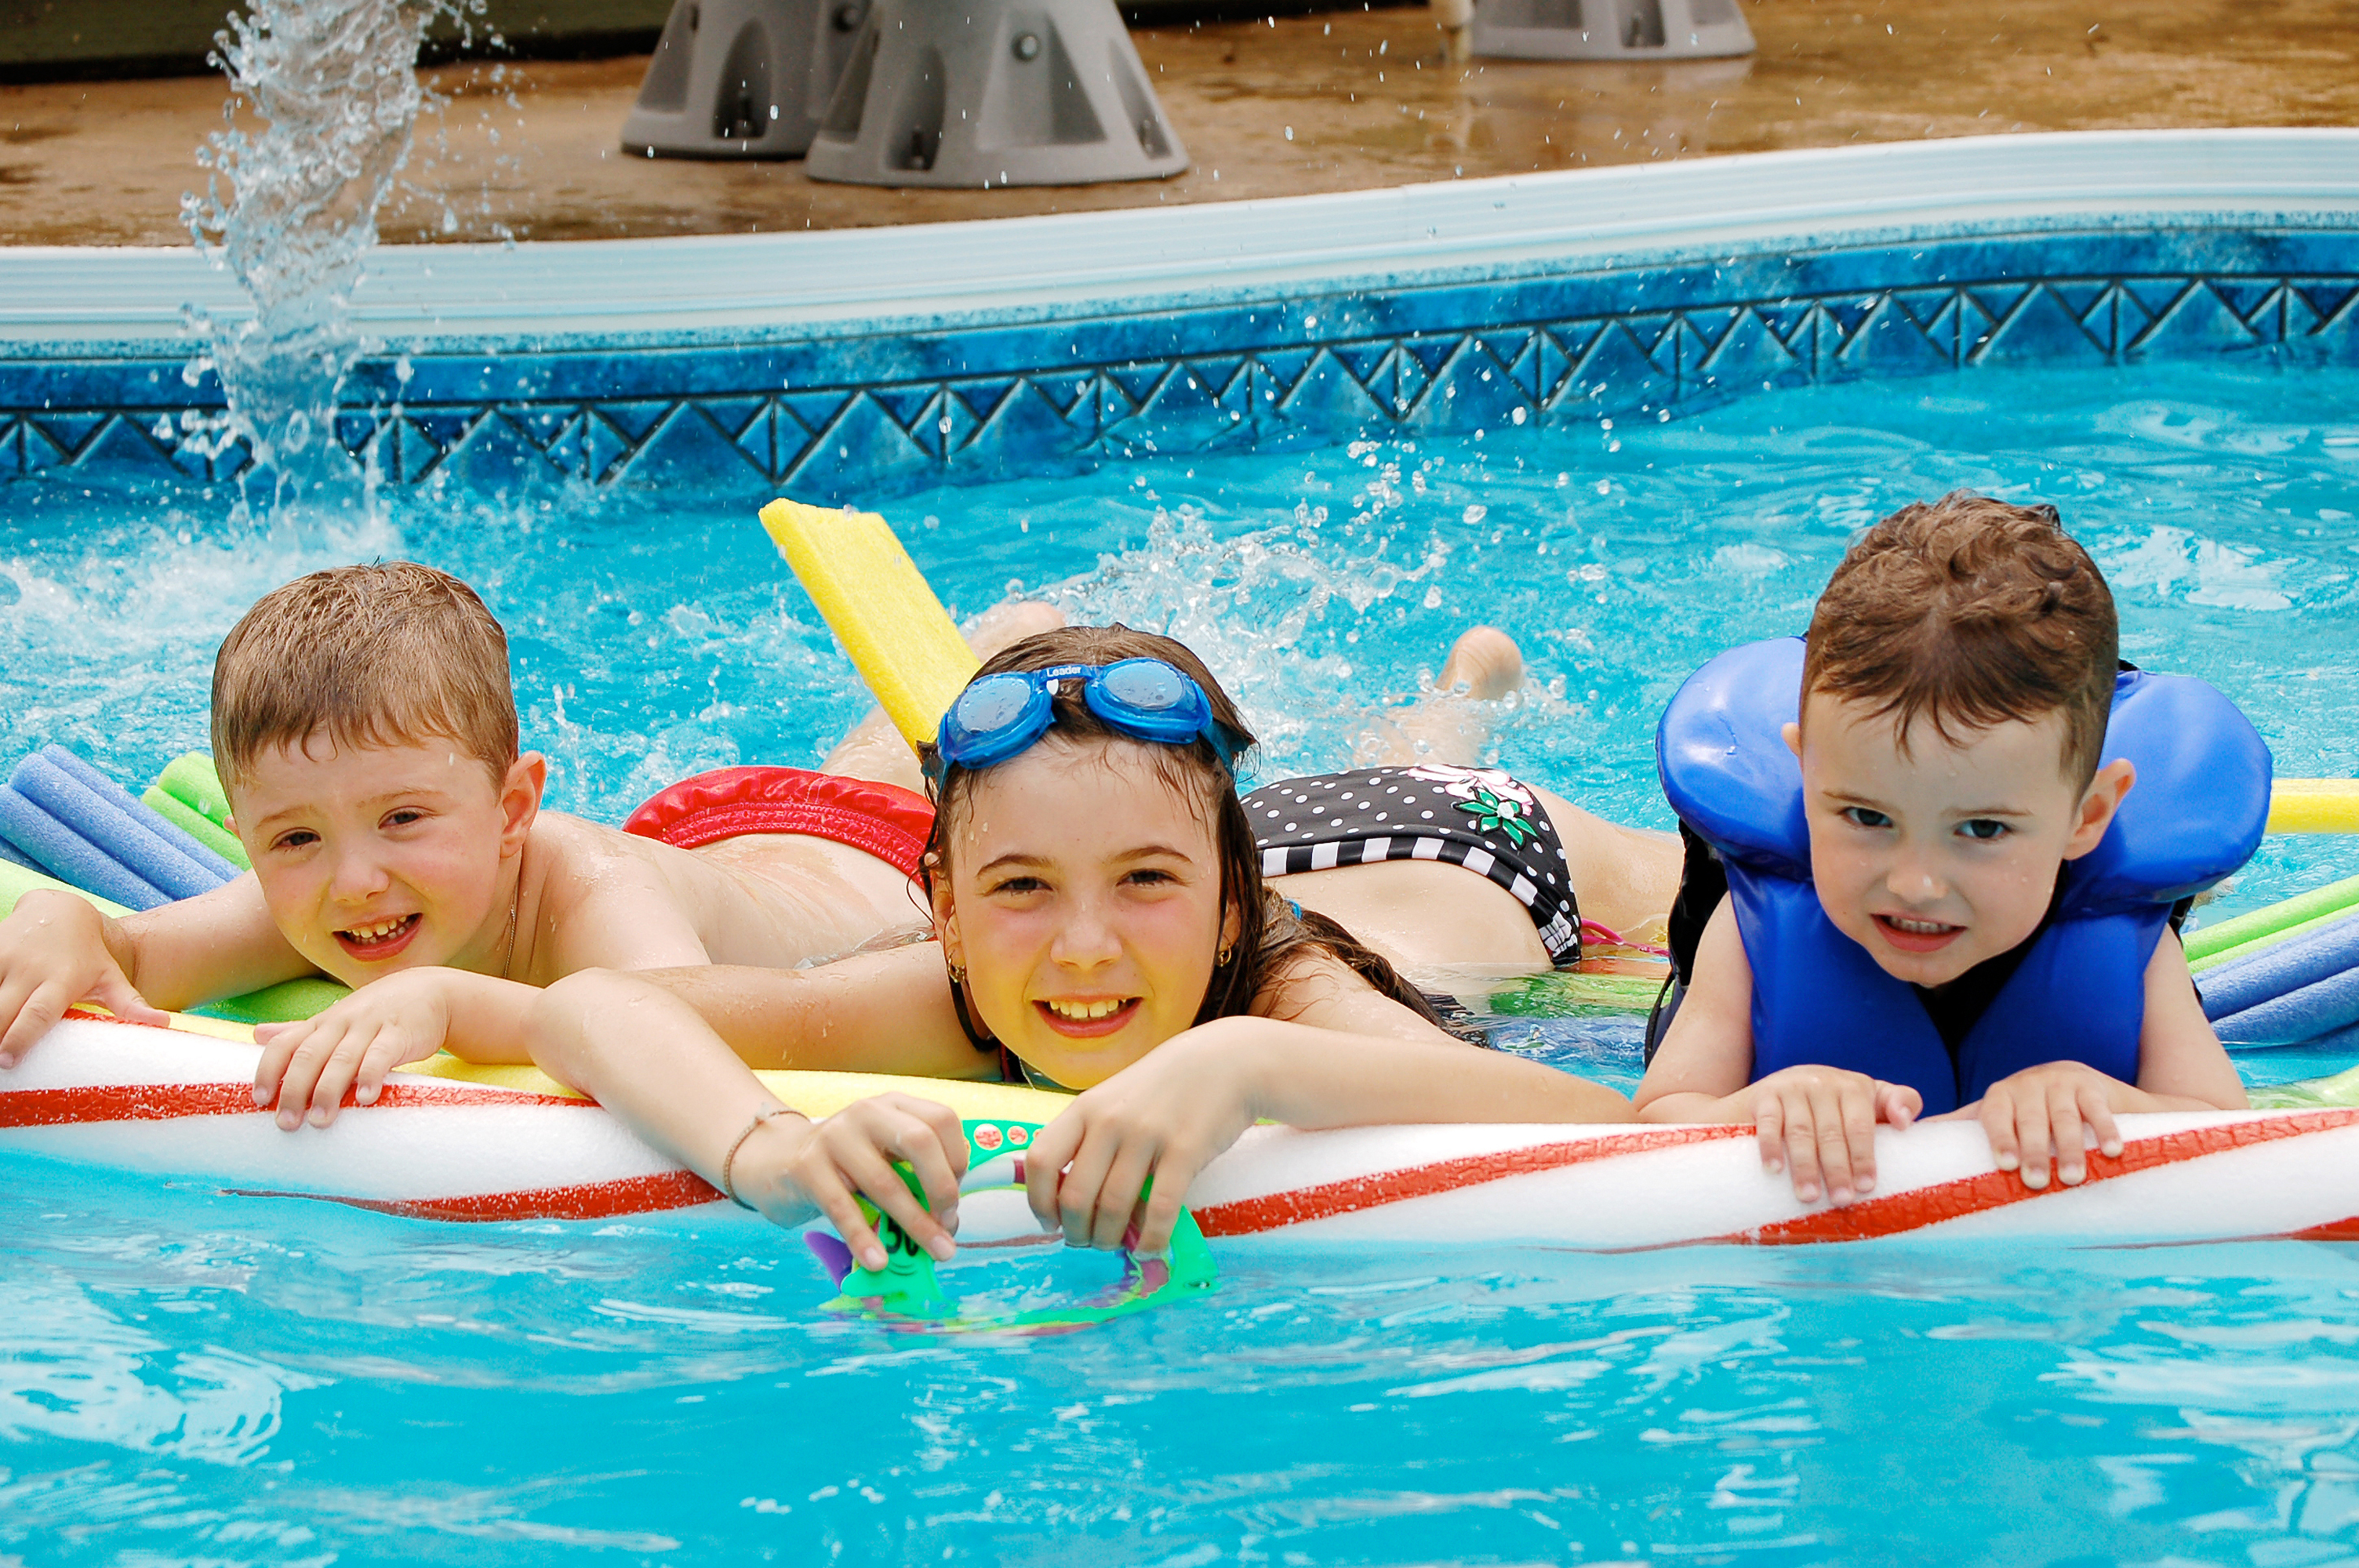 SPS POOL SERVICES, SWIMMING POOL REPAIR ROCHESTER NY